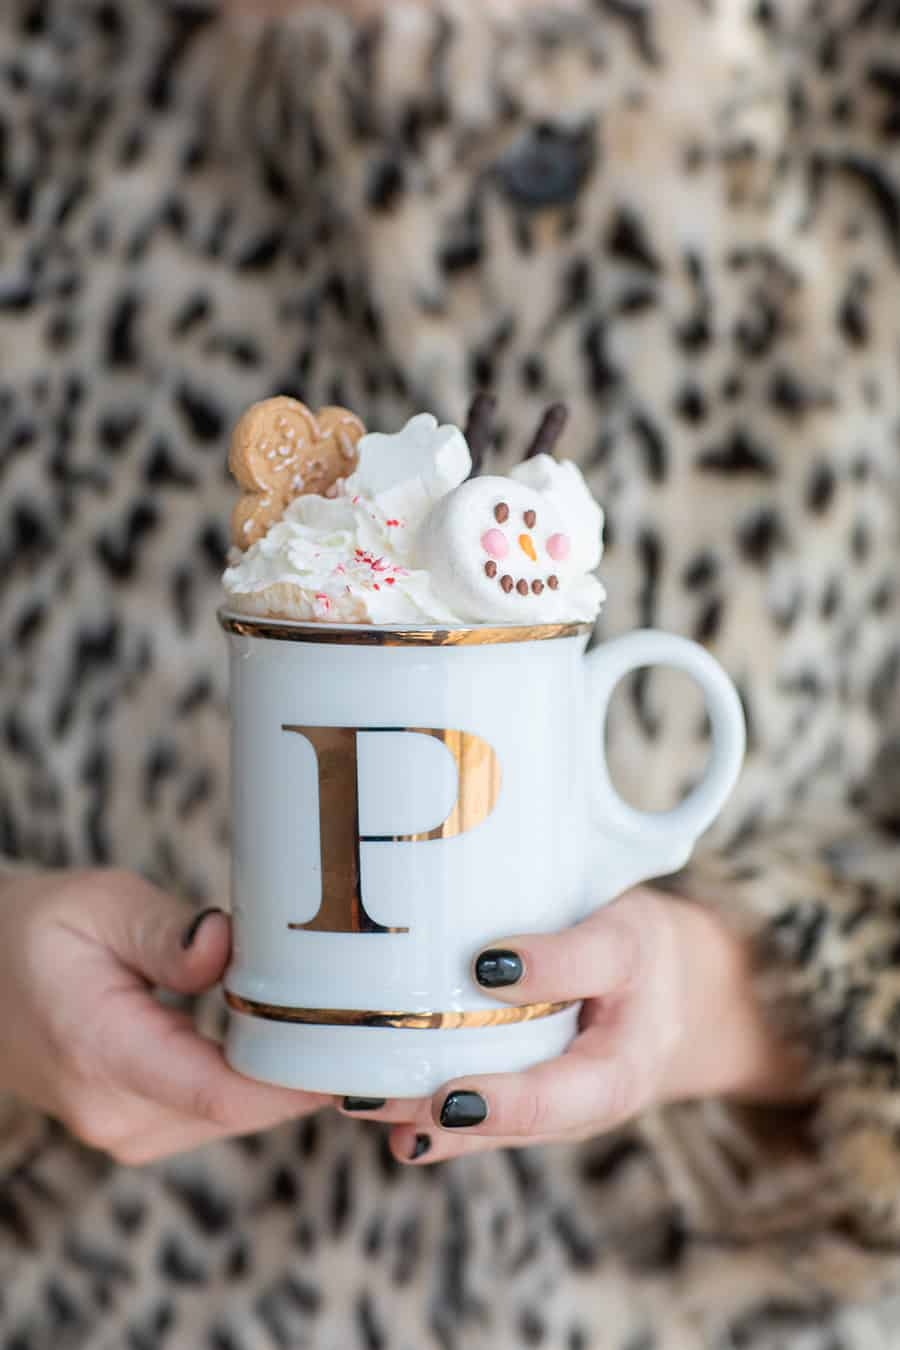 Girl holding a mug of hot chocolate topped with whipped cream, cookies and marshmallow.